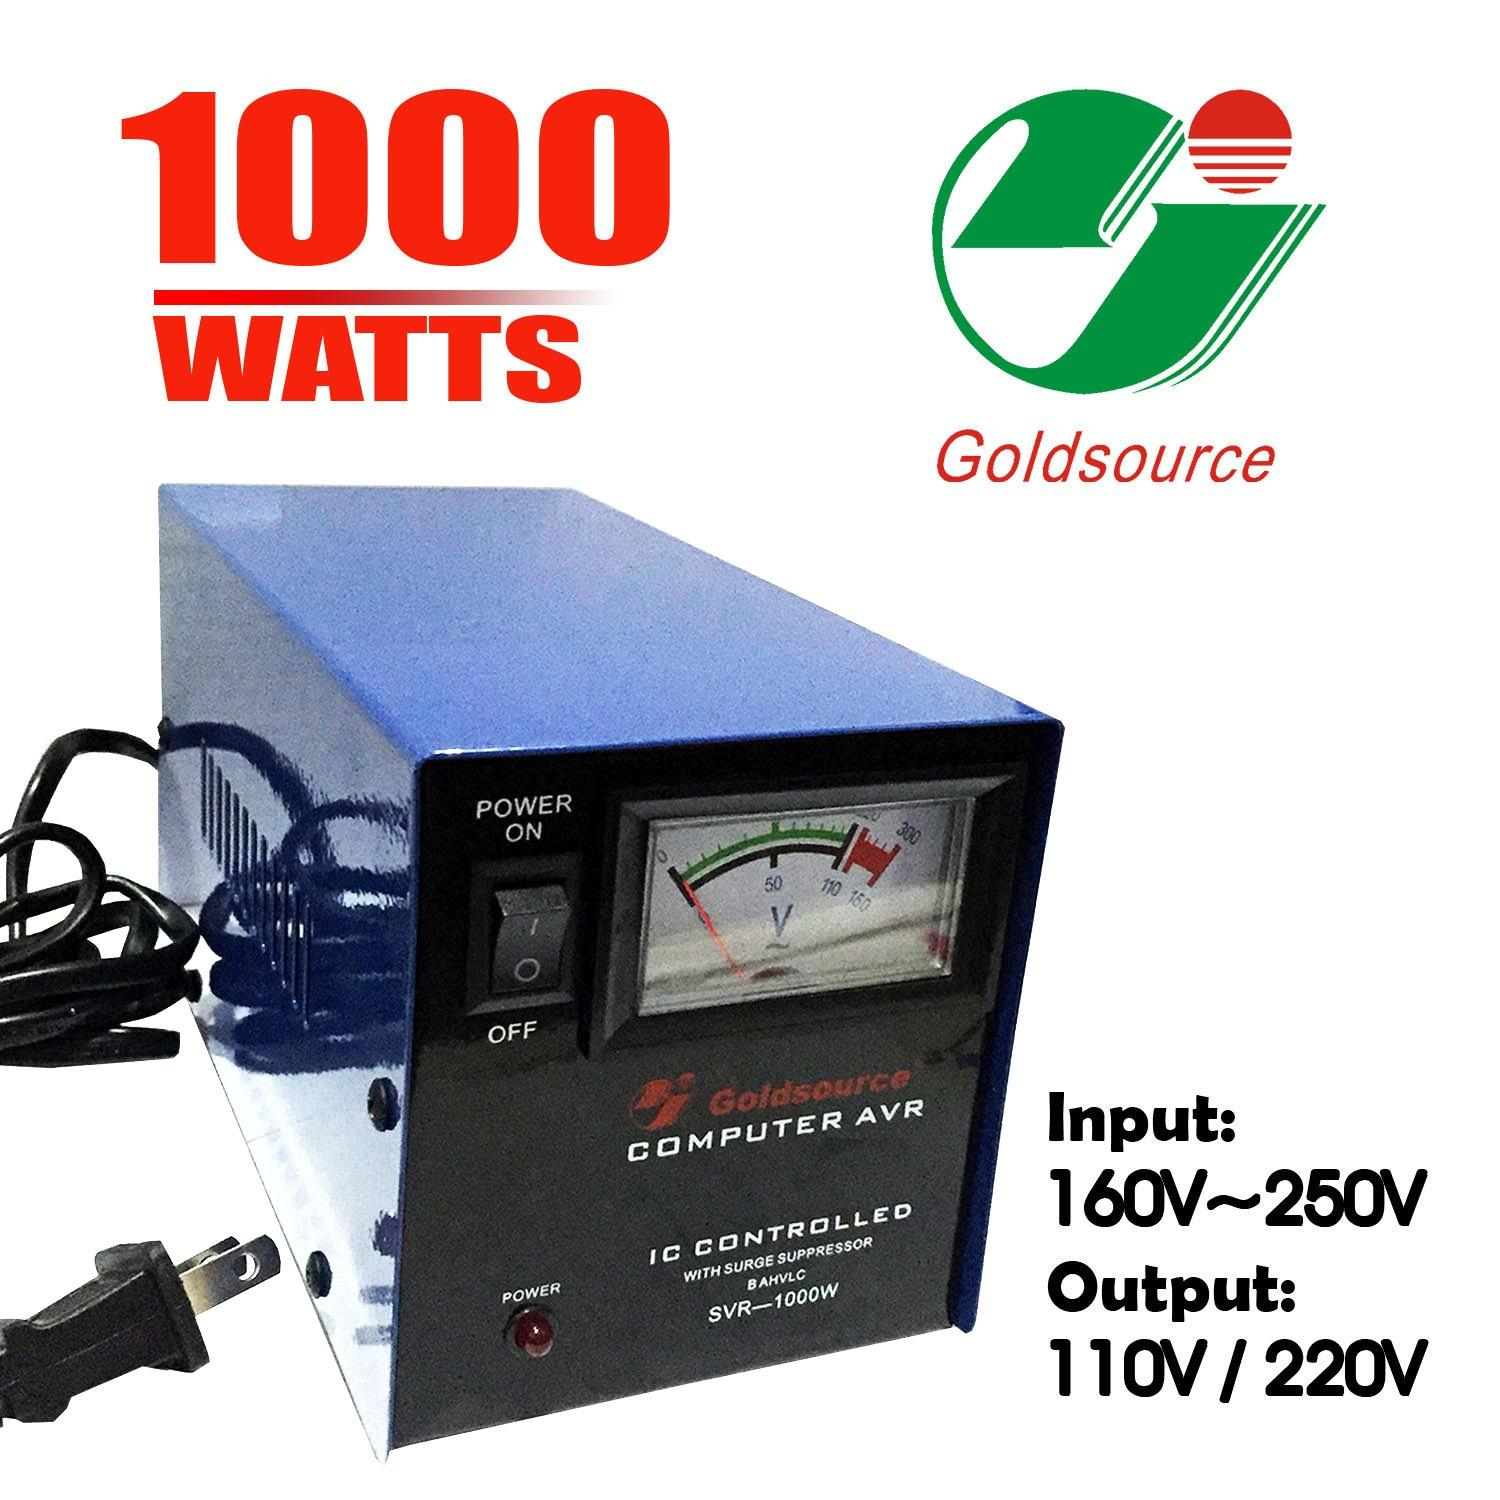 Pc Power Supply For Sale Computer Prices Brands 110 220 Volts Dual 5060hz 20 Amps Goldsource Avr